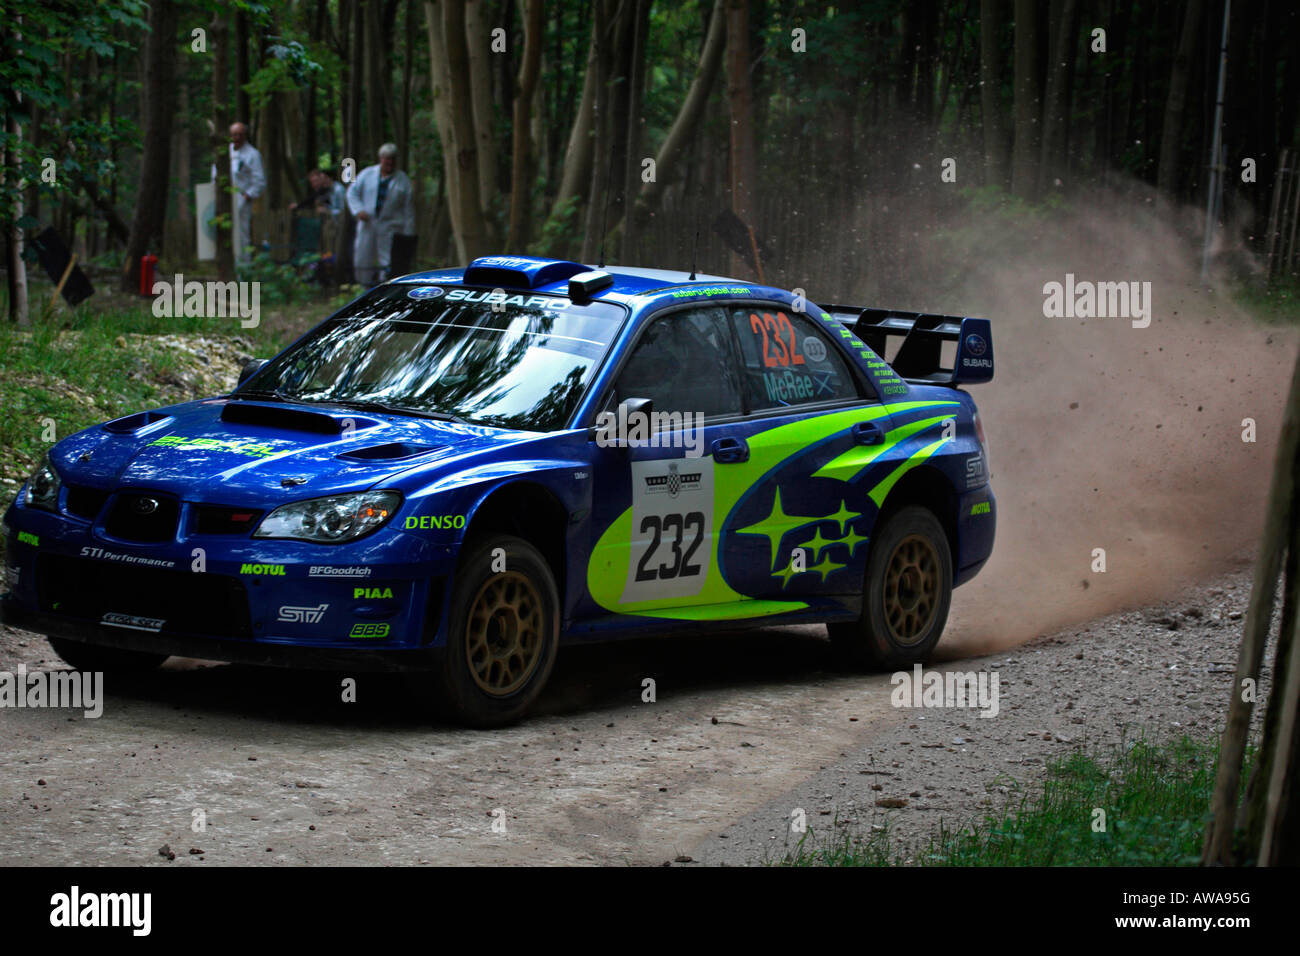 colin mcrae subaru impreza rally car cornering goodwood festival of stock photo alamy https www alamy com stock photo colin mcrae subaru impreza rally car cornering goodwood festival of 16517259 html